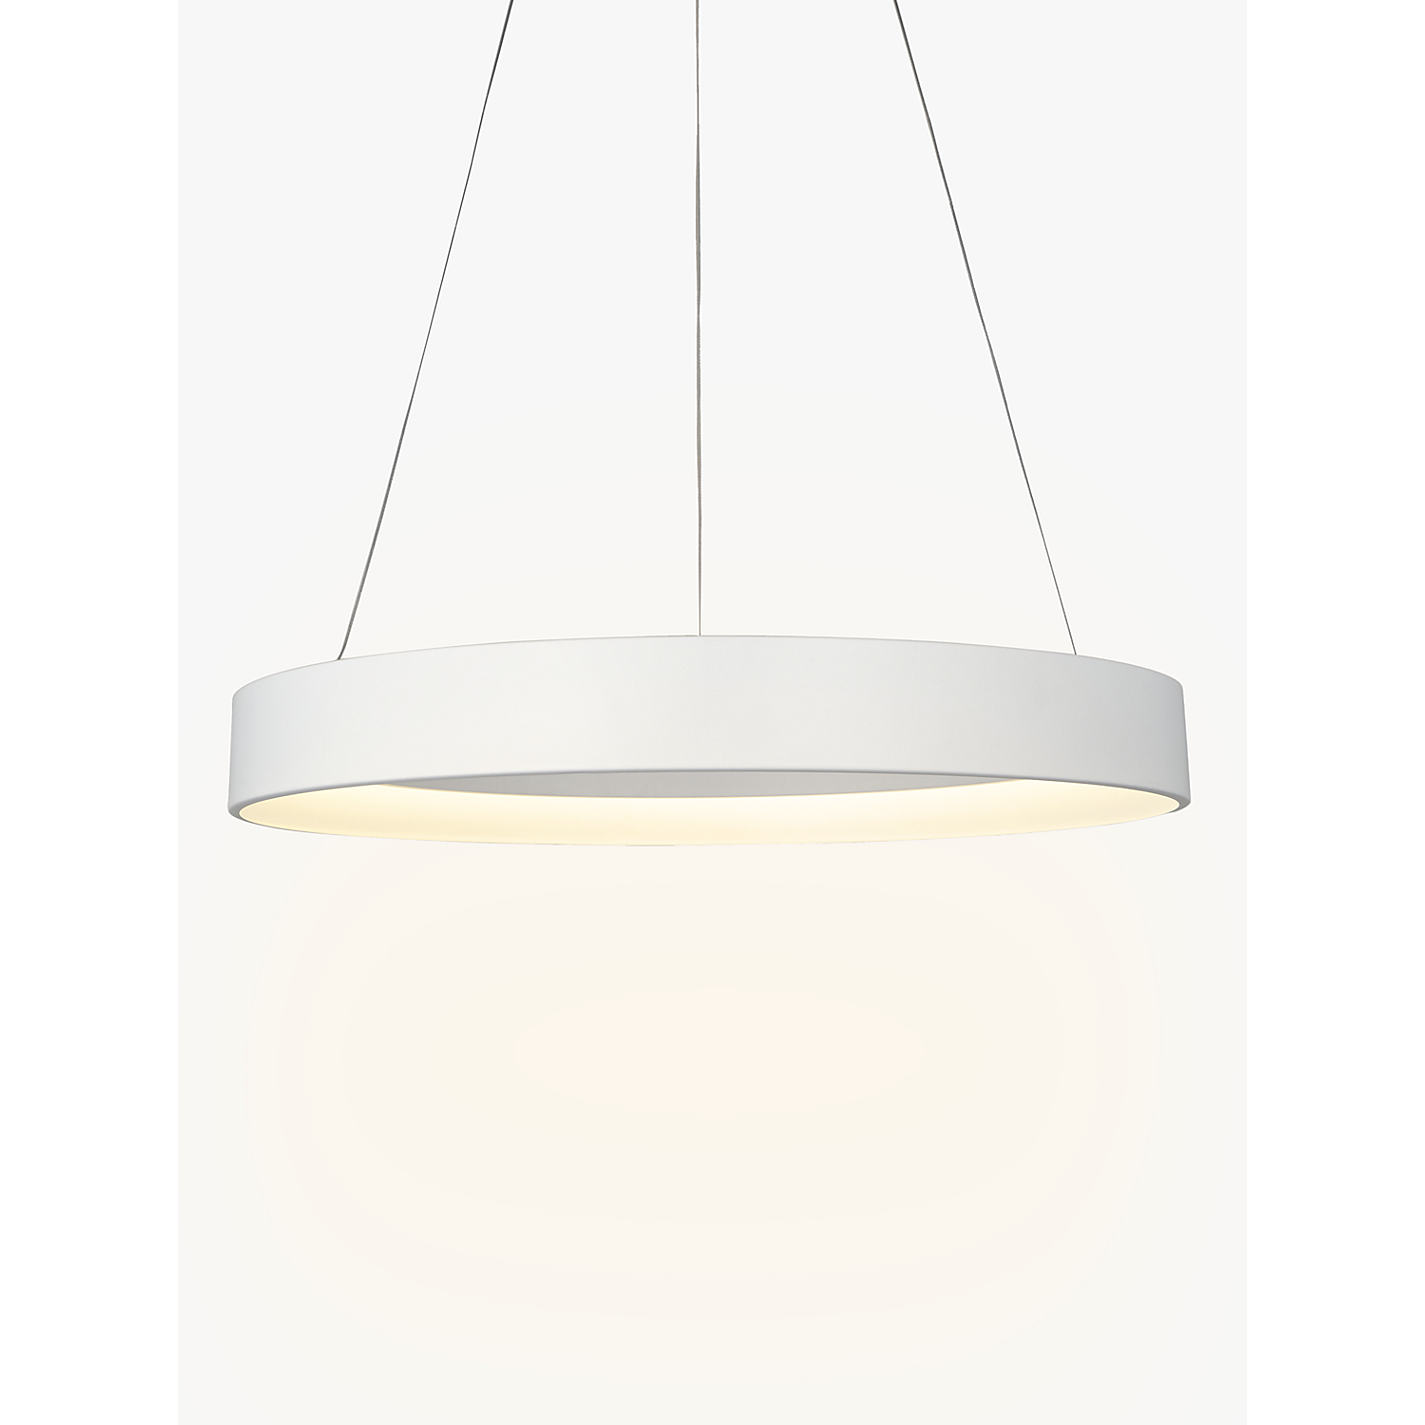 Buy john lewis jorgen hoop led ceiling light large white john buy john lewis jorgen hoop led ceiling light large white online at johnlewis aloadofball Gallery